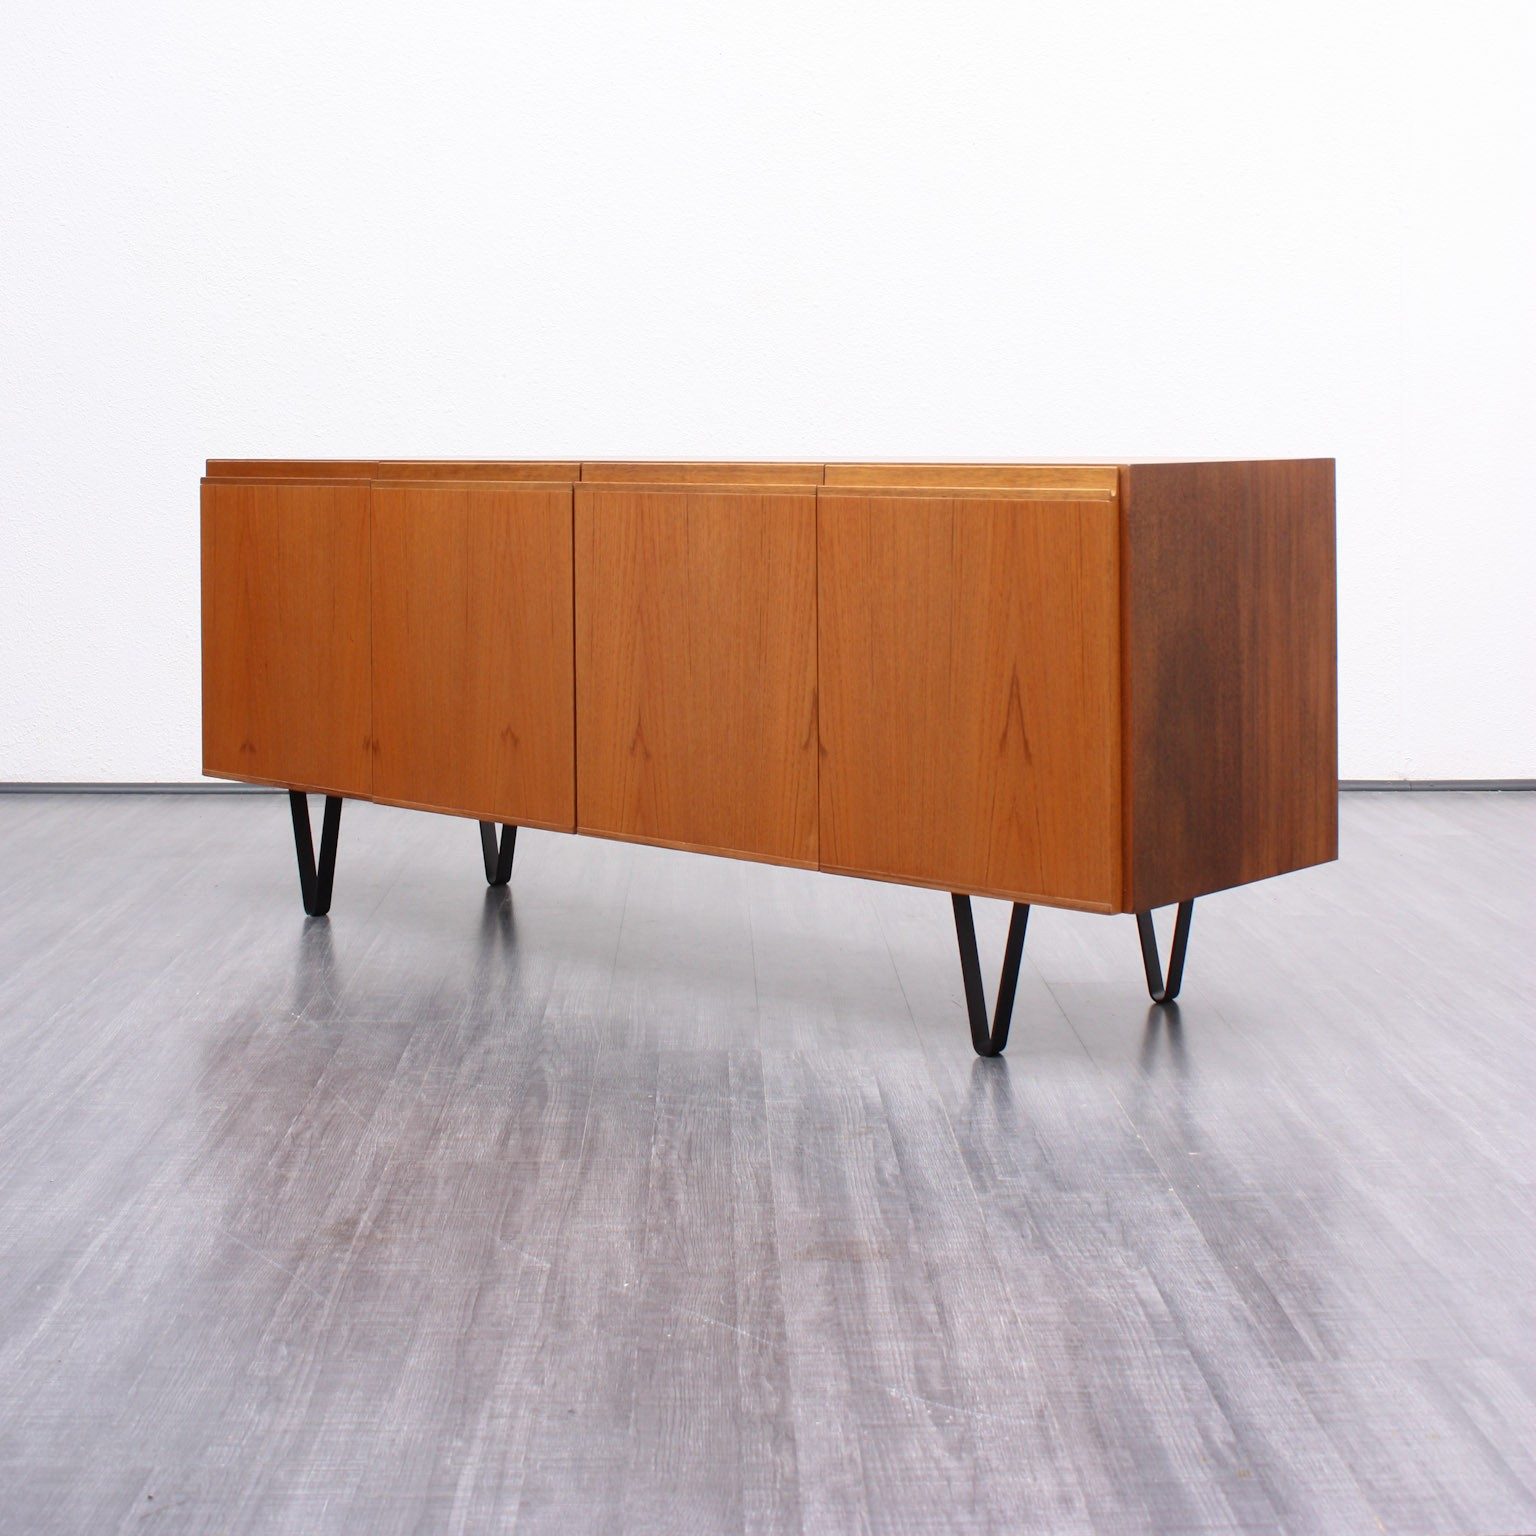 Vintage sideboard with hairpin legs in teak and oak 1960s Design Market